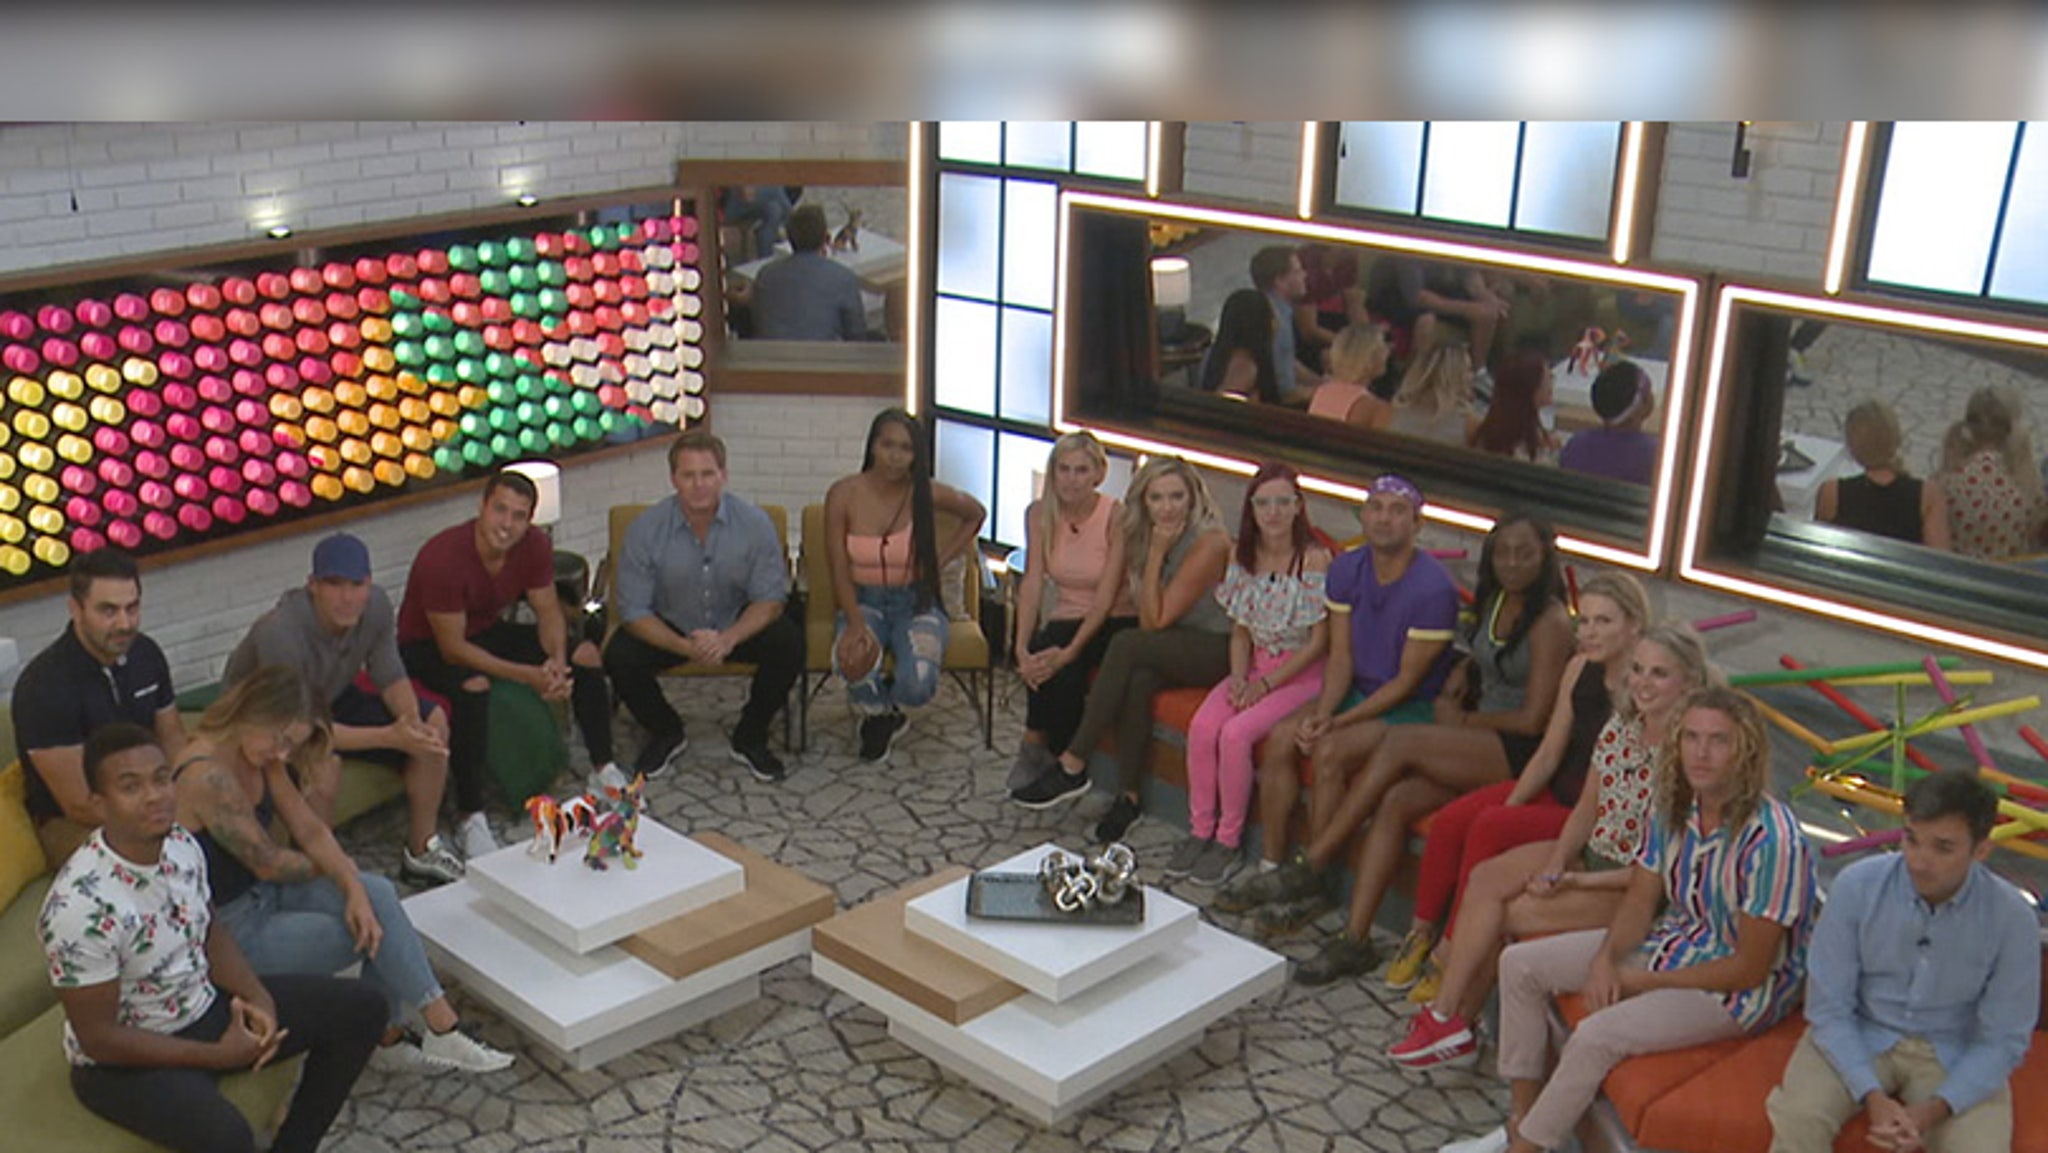 Big Brother All-Stars Kicks Off Live with Unfair Challenge, Technical Problems